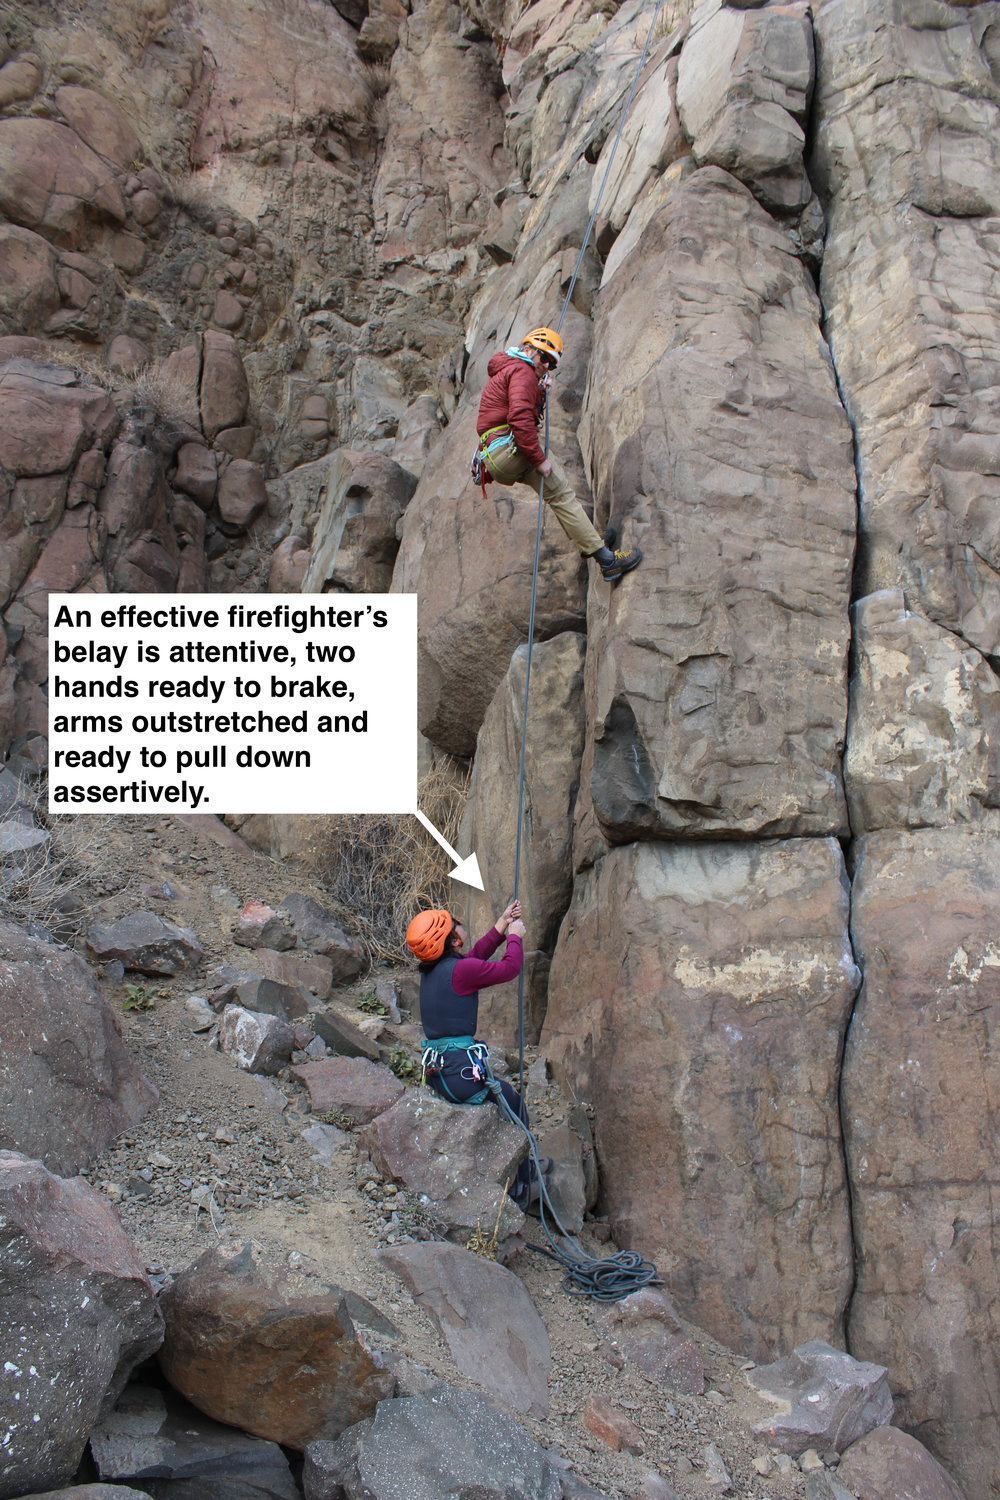 When this climber offers a firefighter's belay, she means it.  She's attentive and ready to halt the rappeller at any moment.